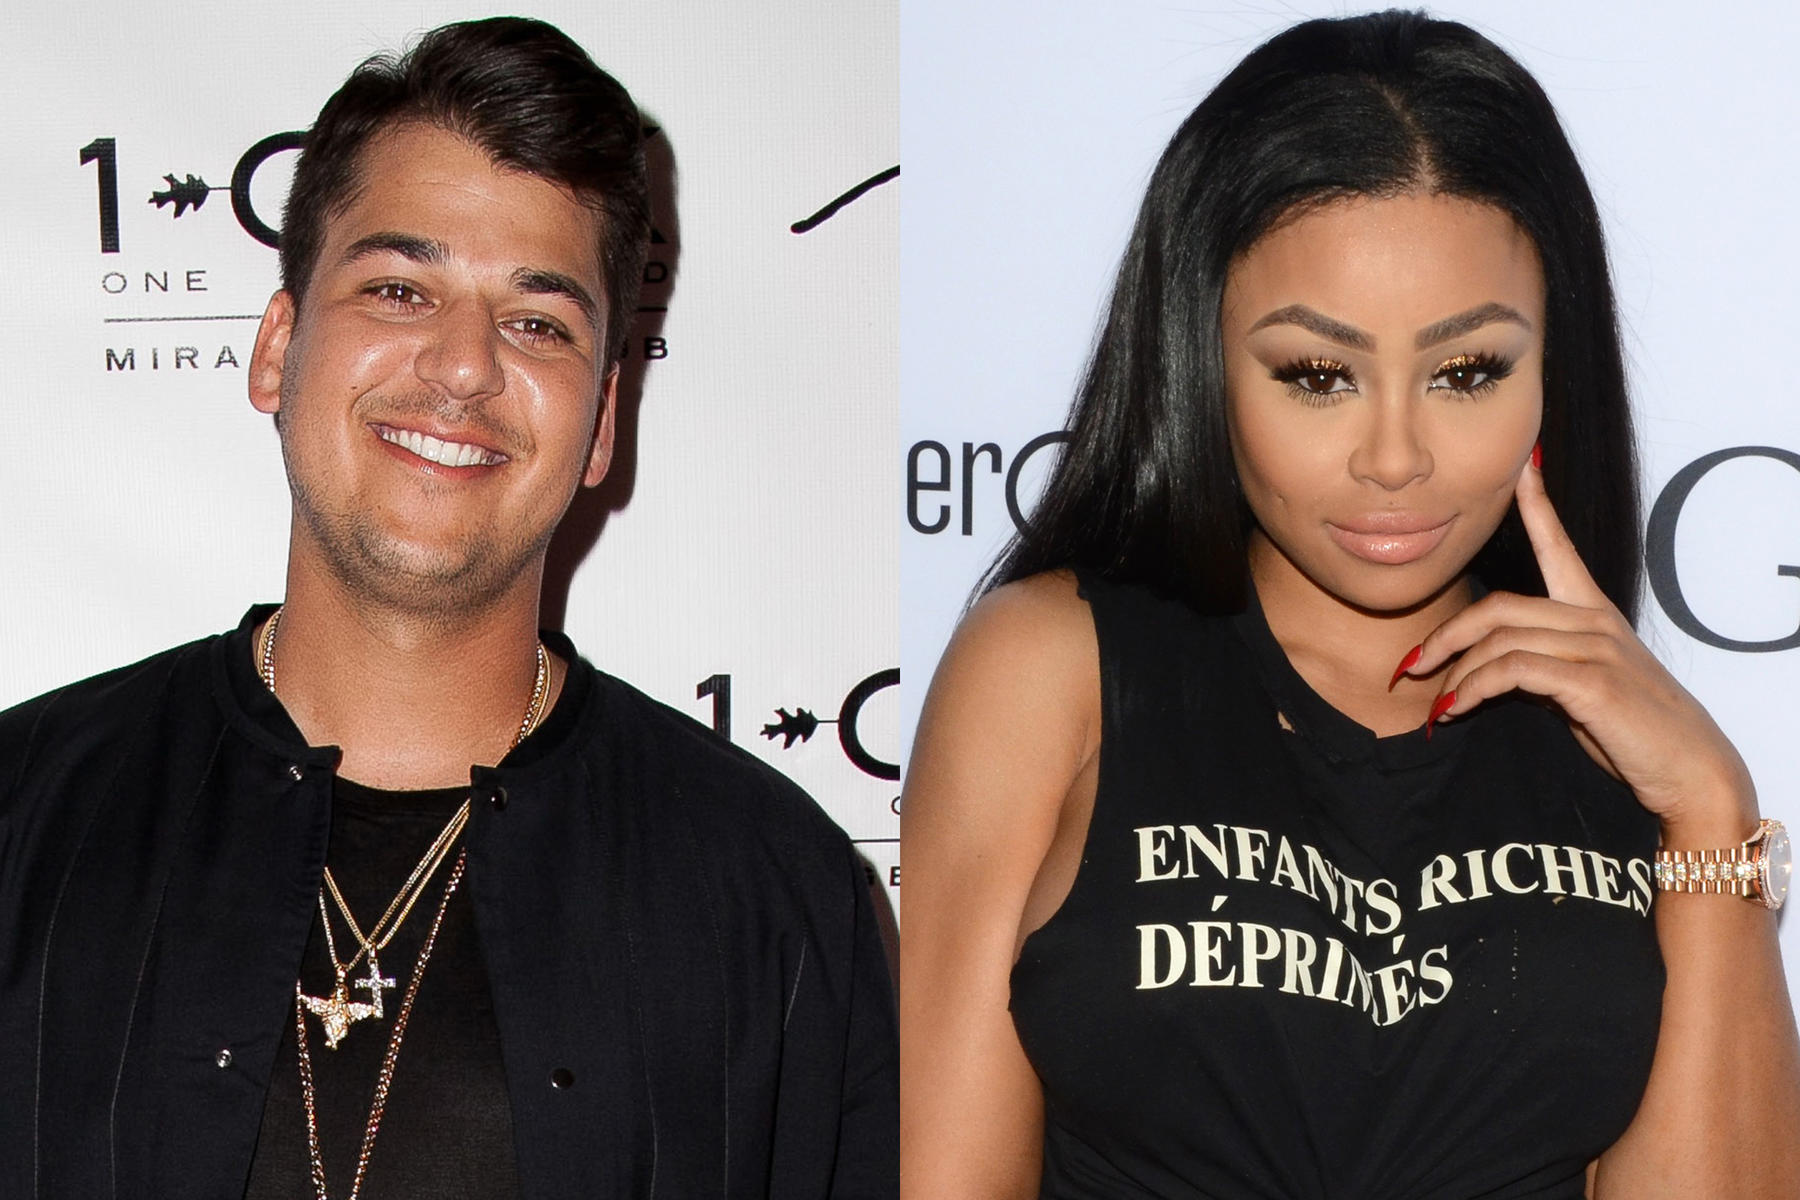 Blac Chyna Slams Rob Kardashian For Now Allowing Their Daughter, Dream To Be A Part Of Her Docu-Series